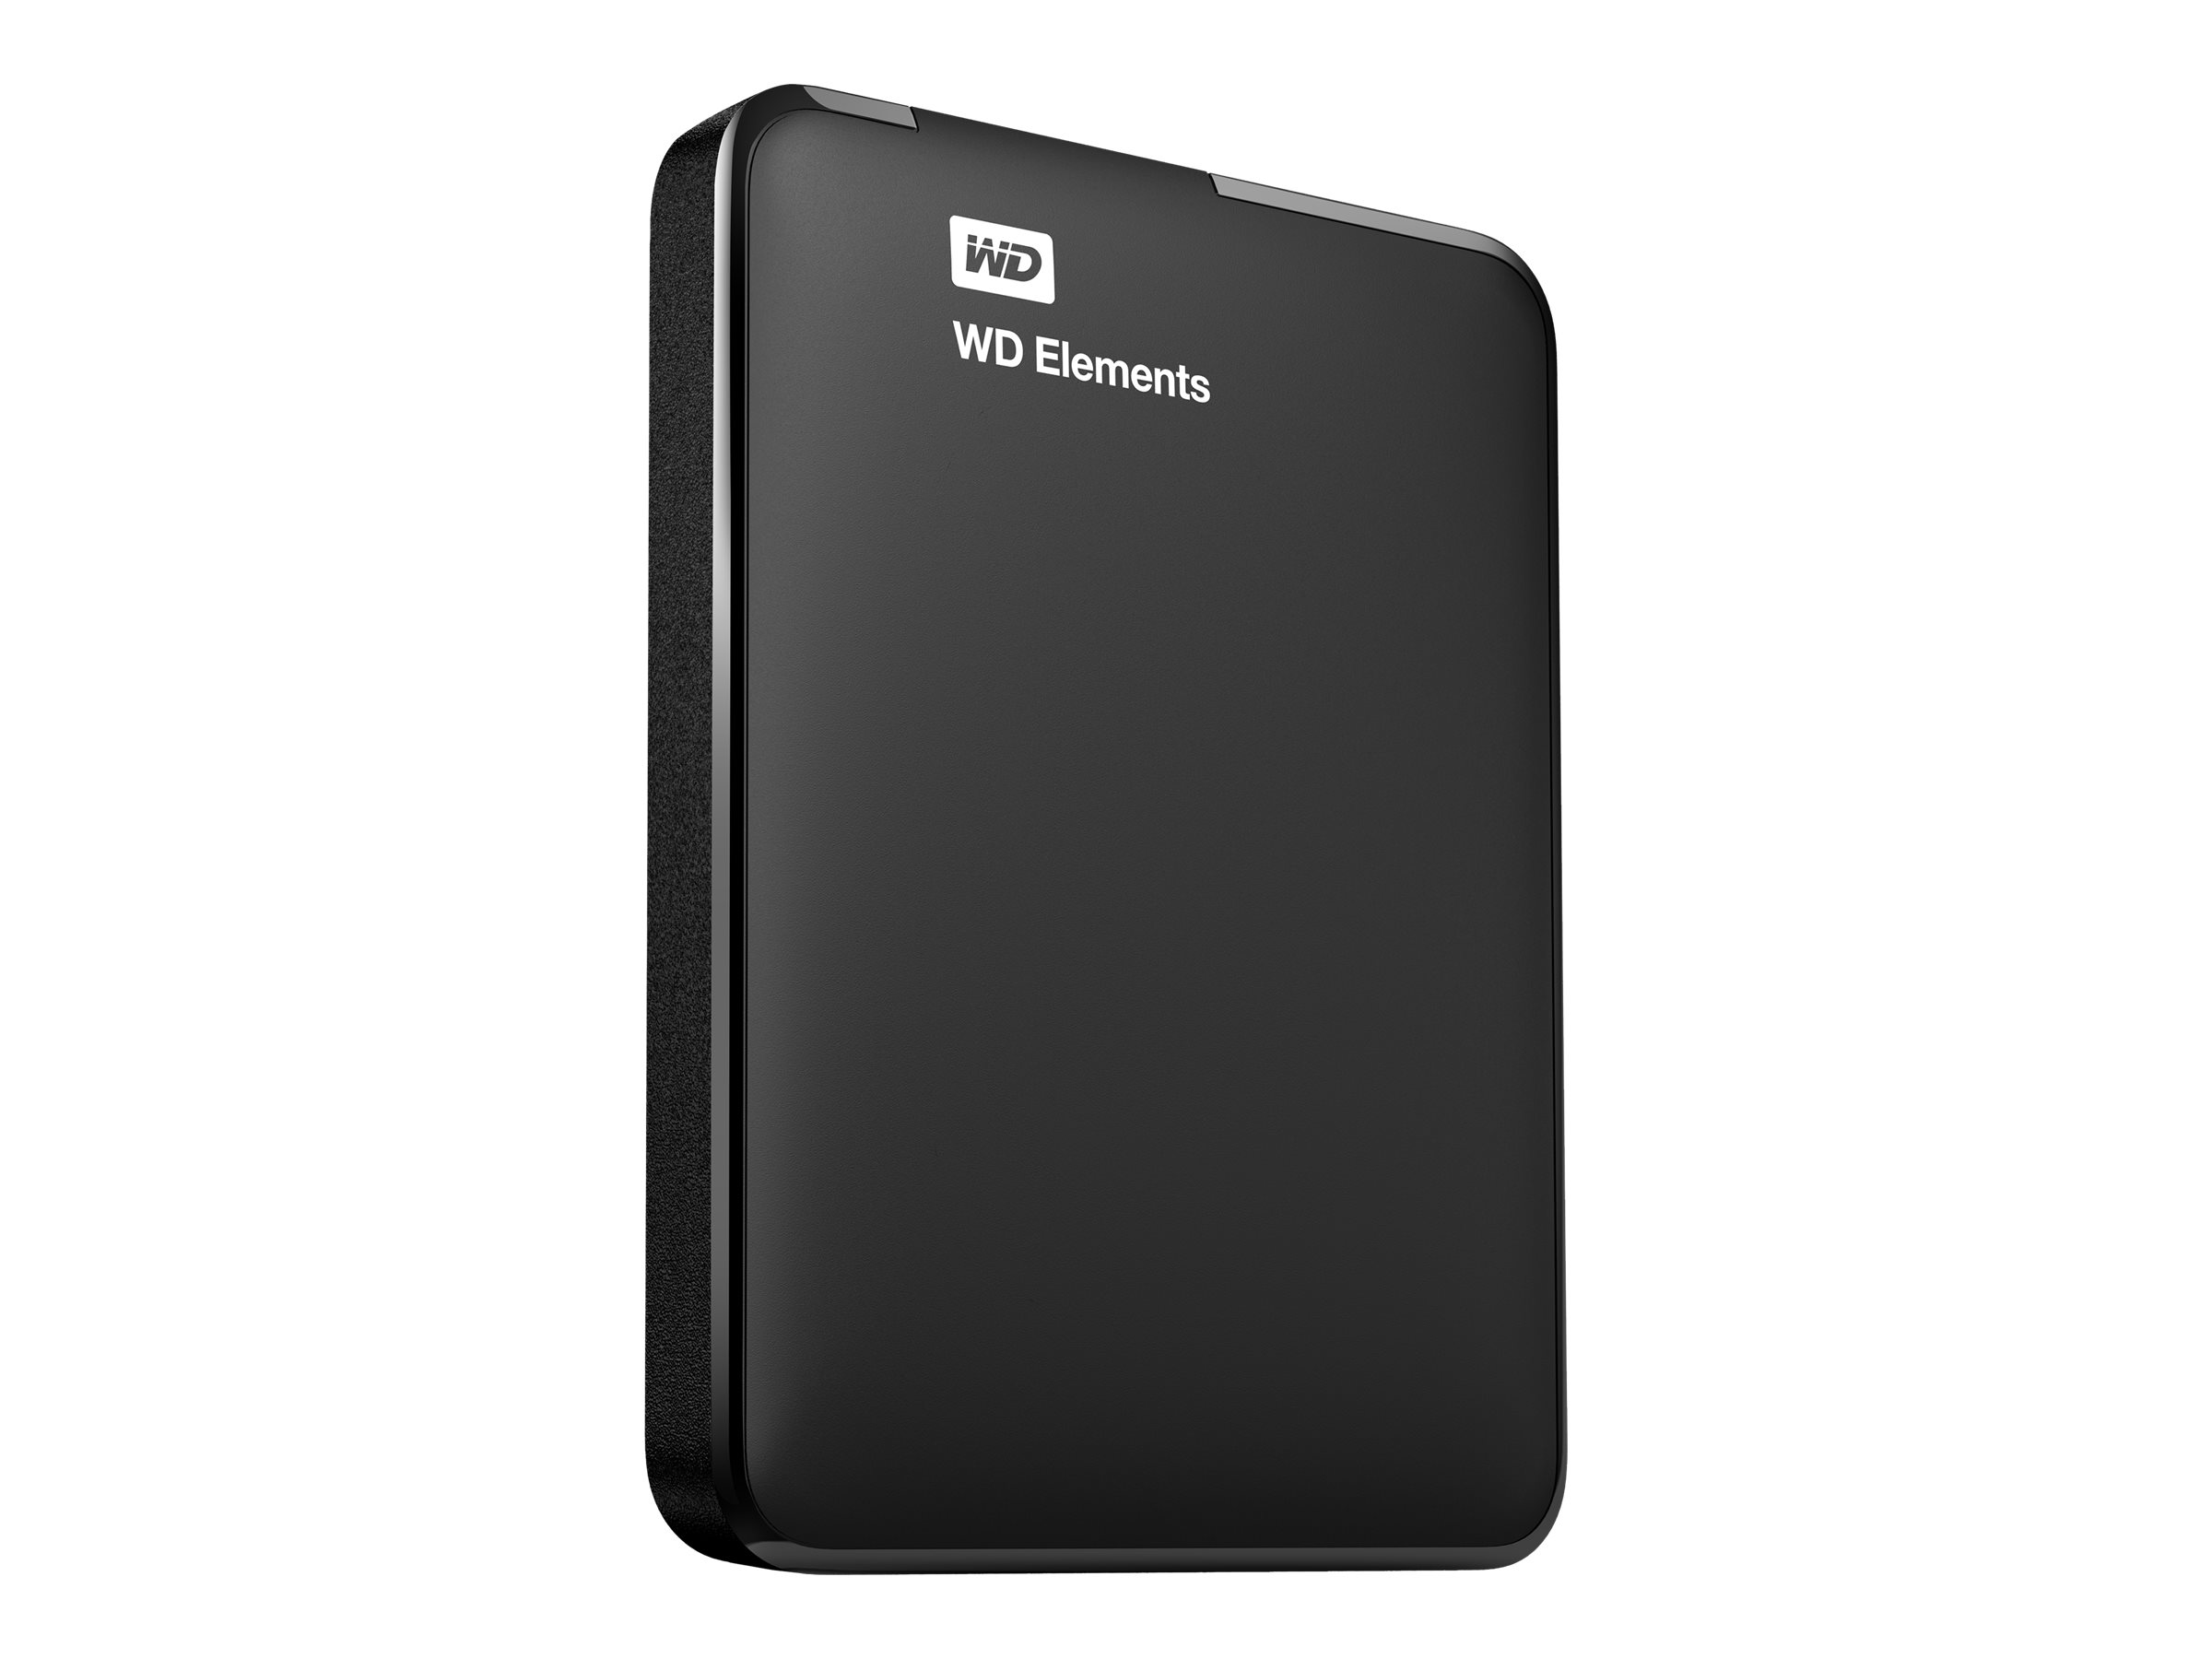 disque-dur-externe-western-digital-elements-4-to